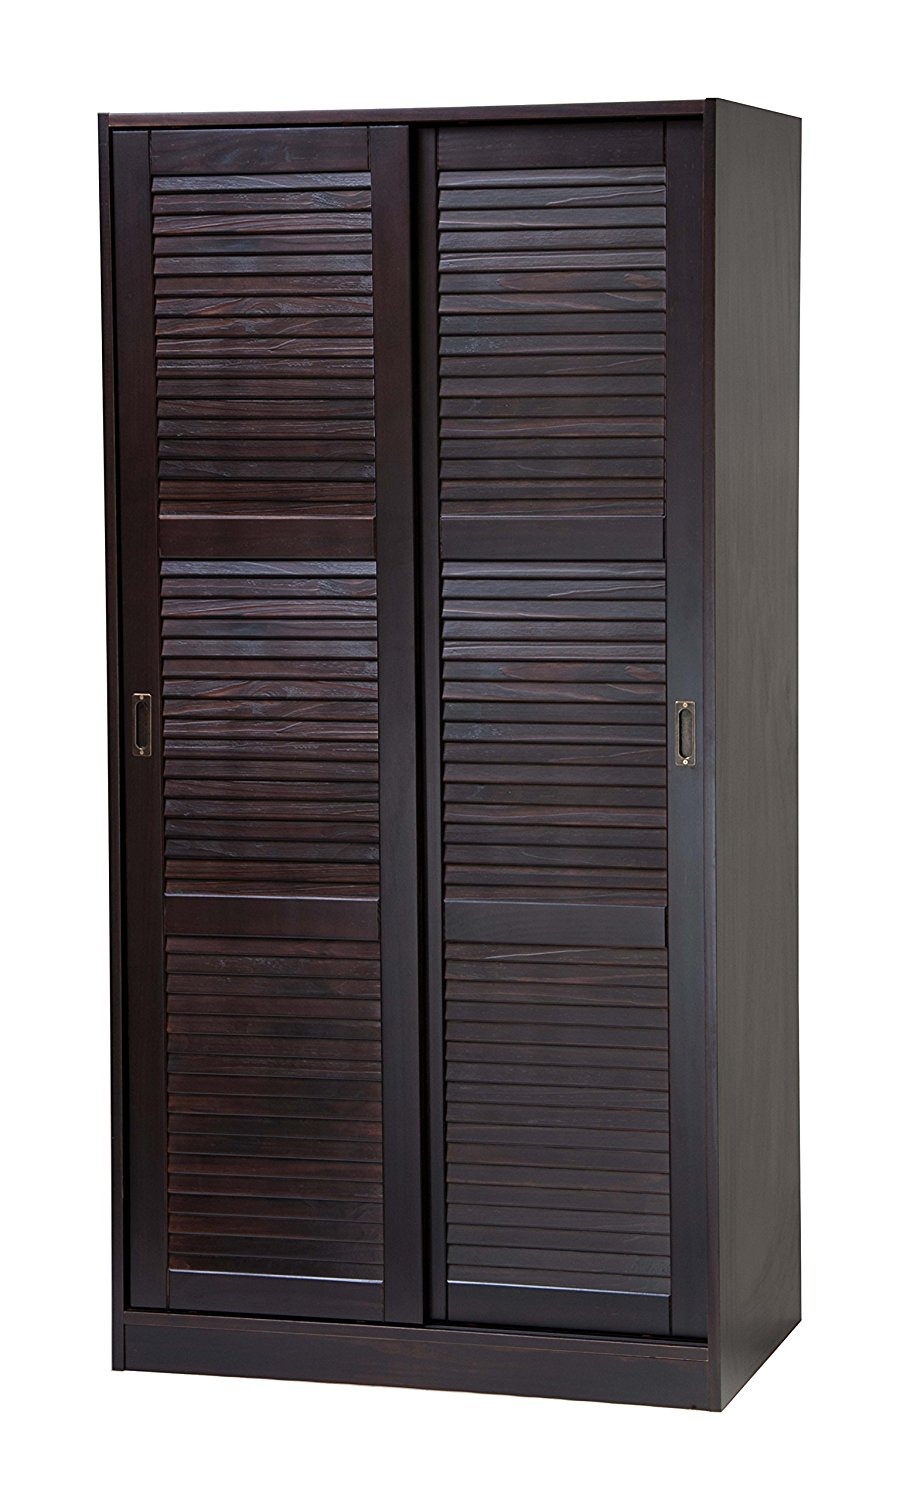 100 Solid Wood 2 Sliding Door Wardrobe Armoire Closet Mudroom Storage By Palace Imports Java Color 1 Large Shelf Clothing Rod Included Extra